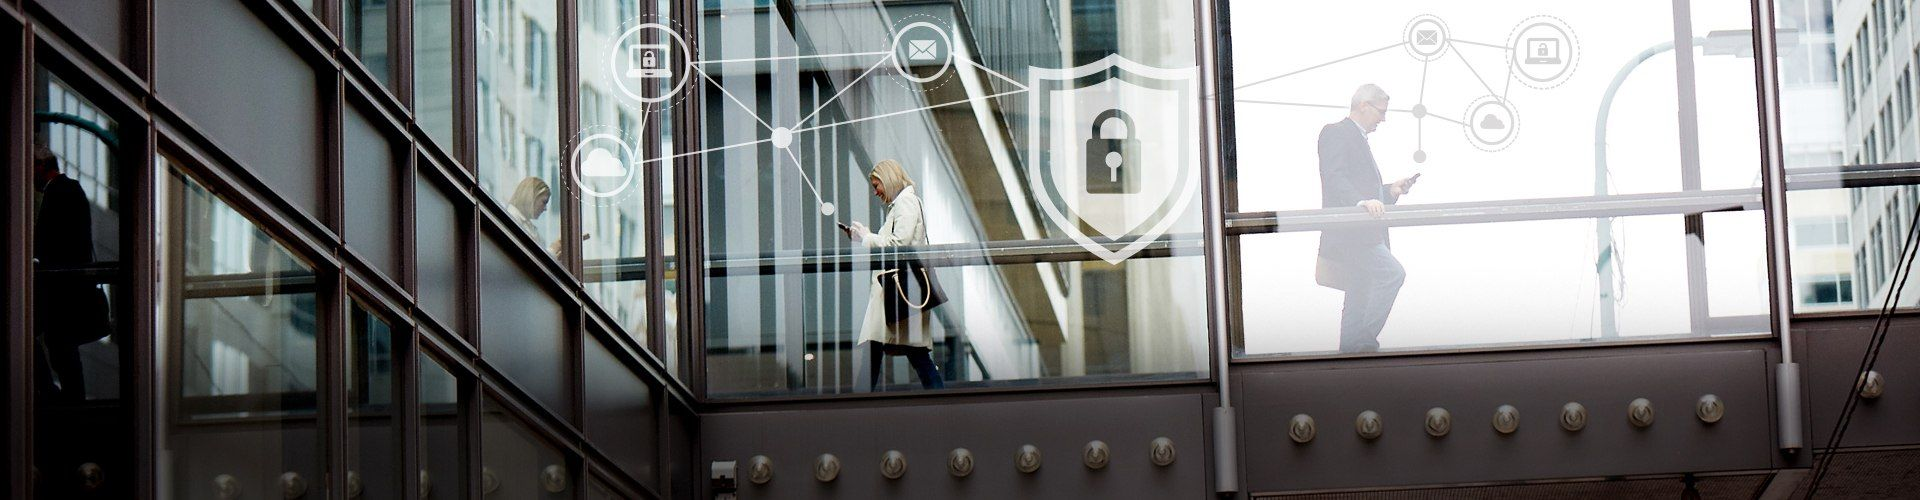 Cybersecurity solutions protect business-critical data